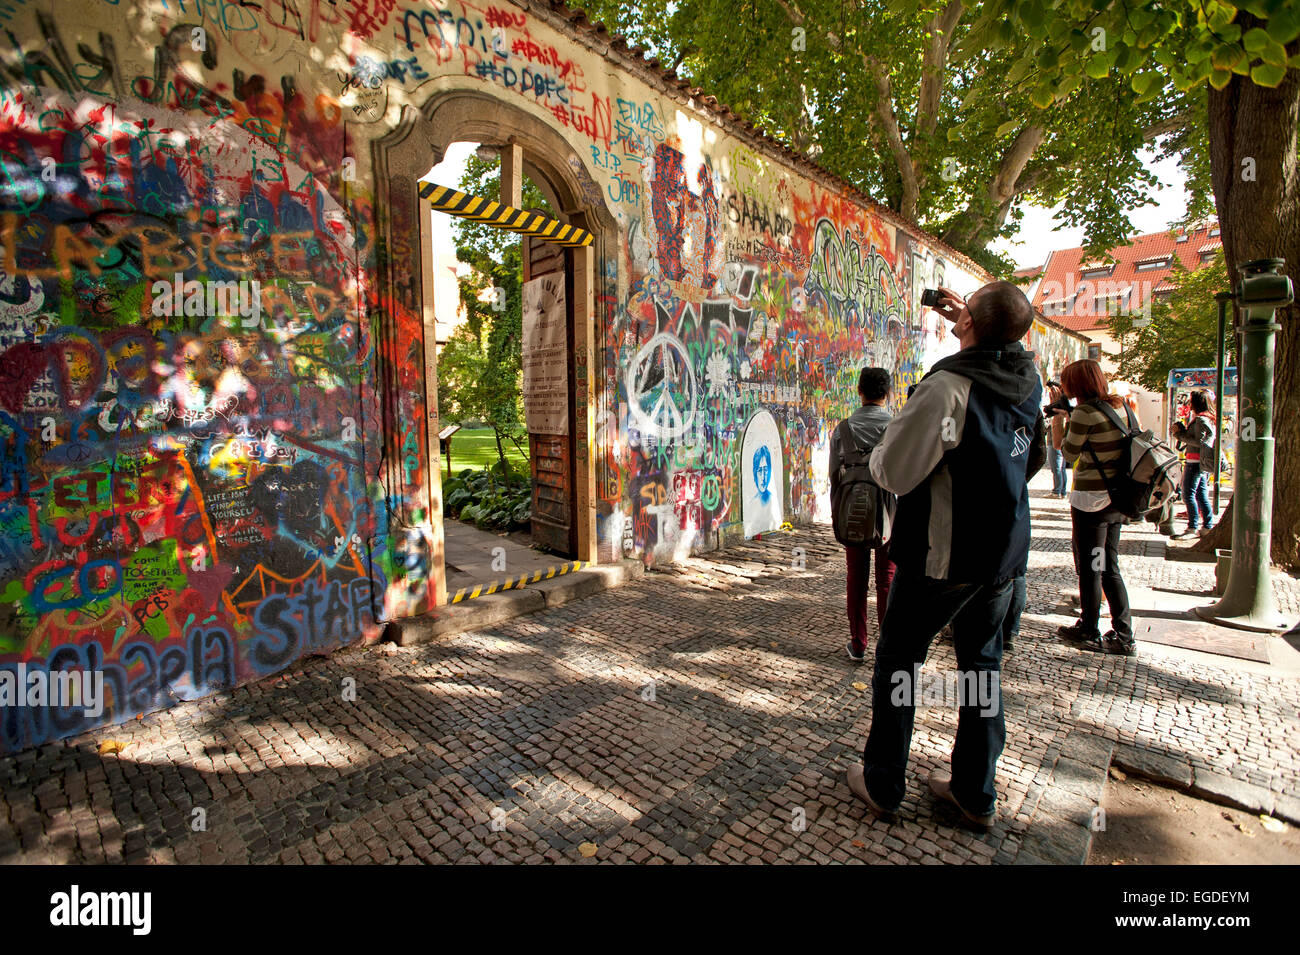 Graffiti along the Lennon Wall at the Grand Priory Square, Prague, Czech Republic, Europe - Stock Image